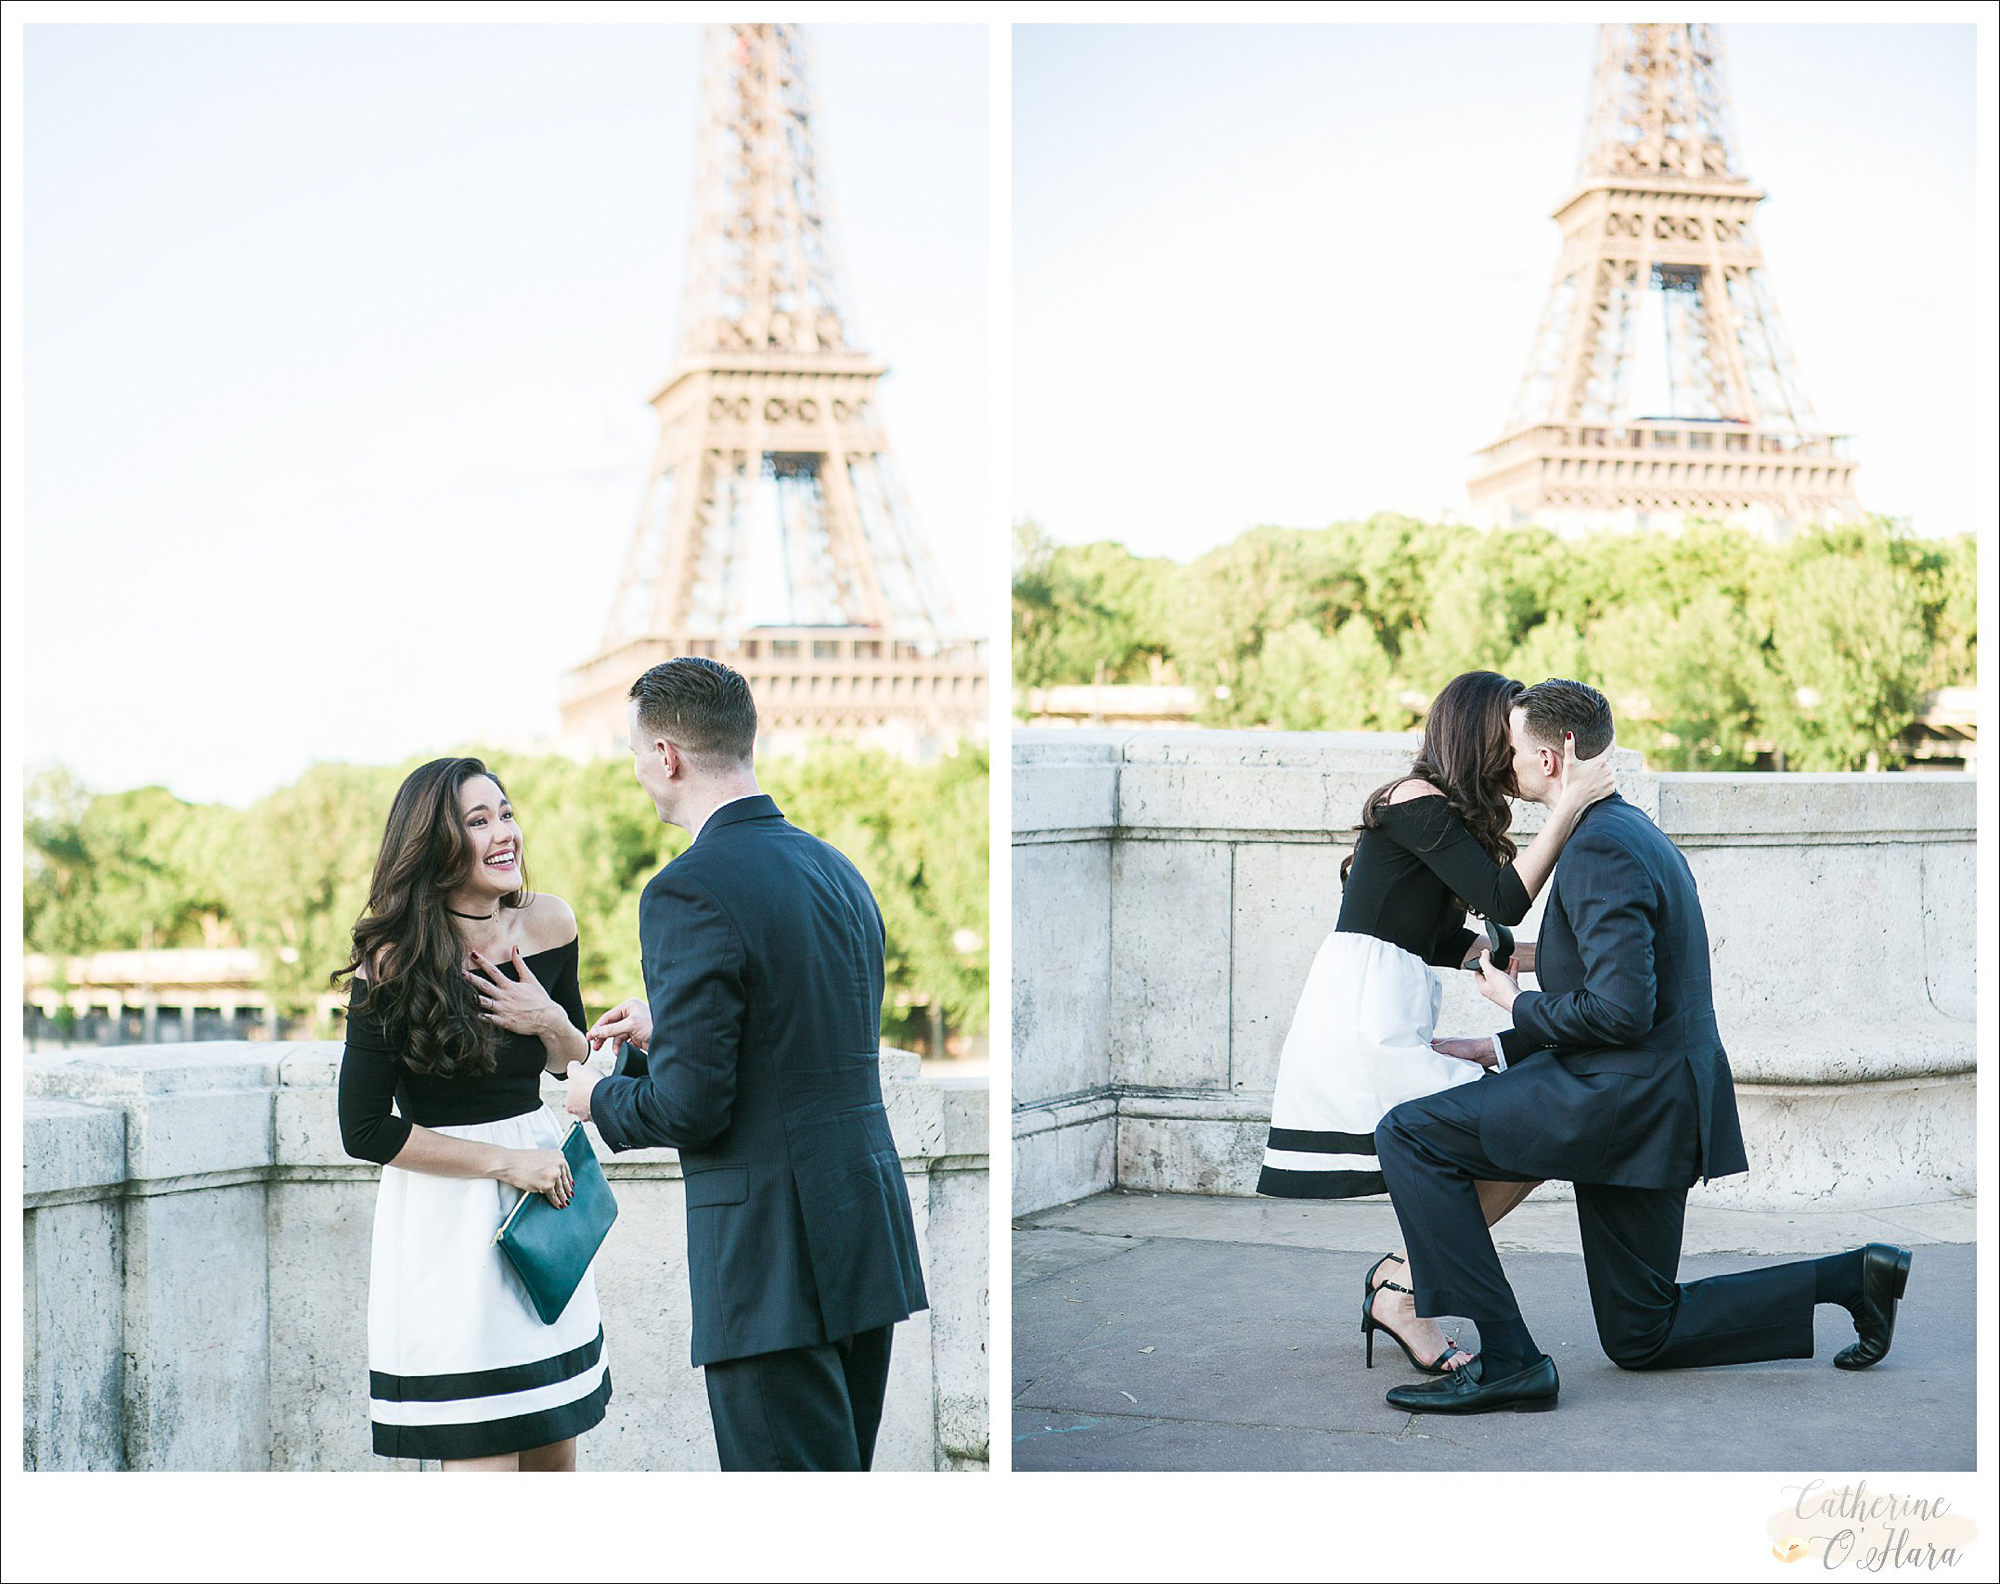 surprise proposal engagement photographer paris france-09.jpg